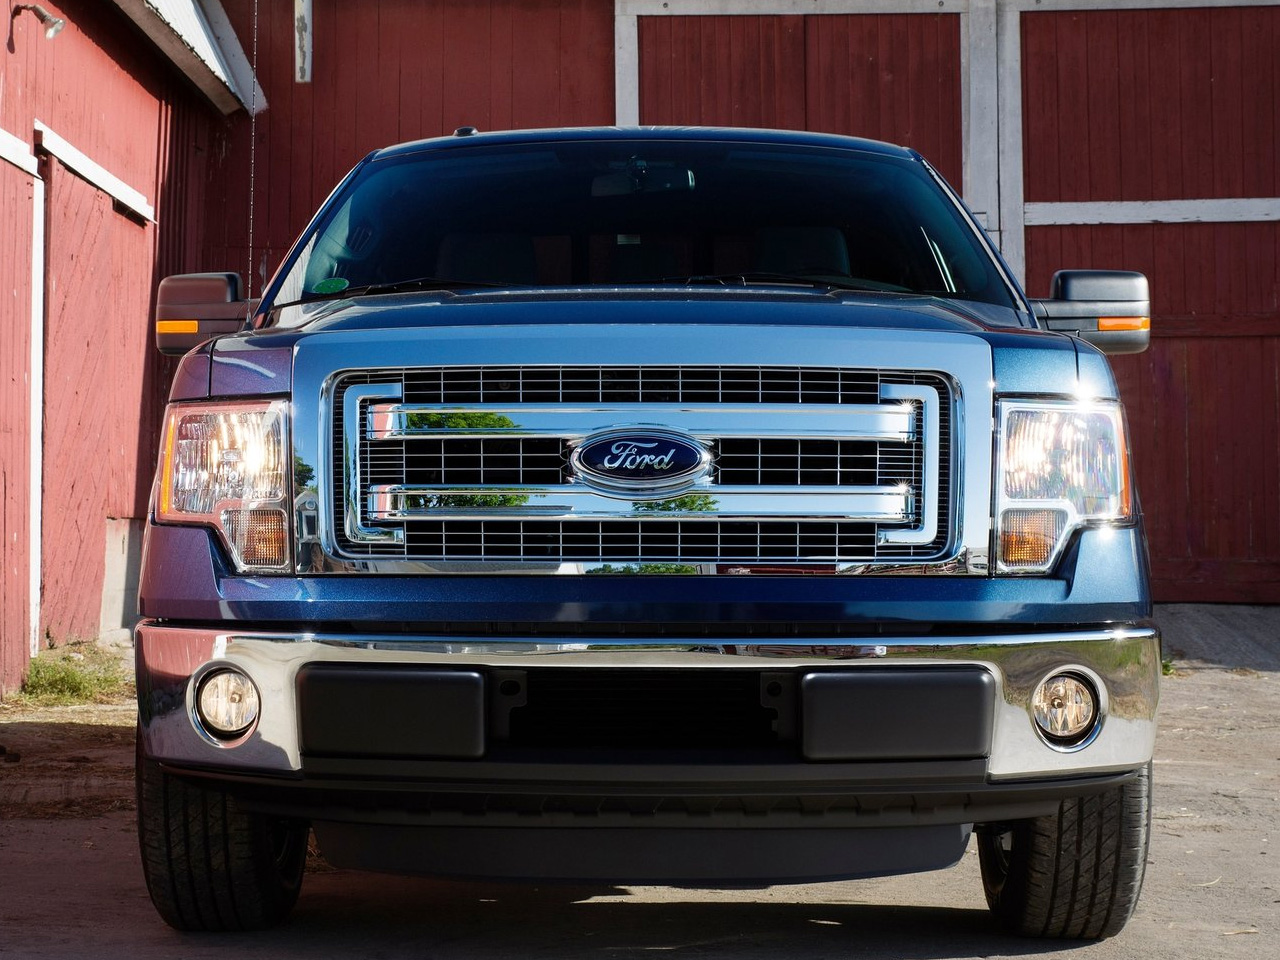 2013 ford f 150 front ford f 150 blog. Black Bedroom Furniture Sets. Home Design Ideas